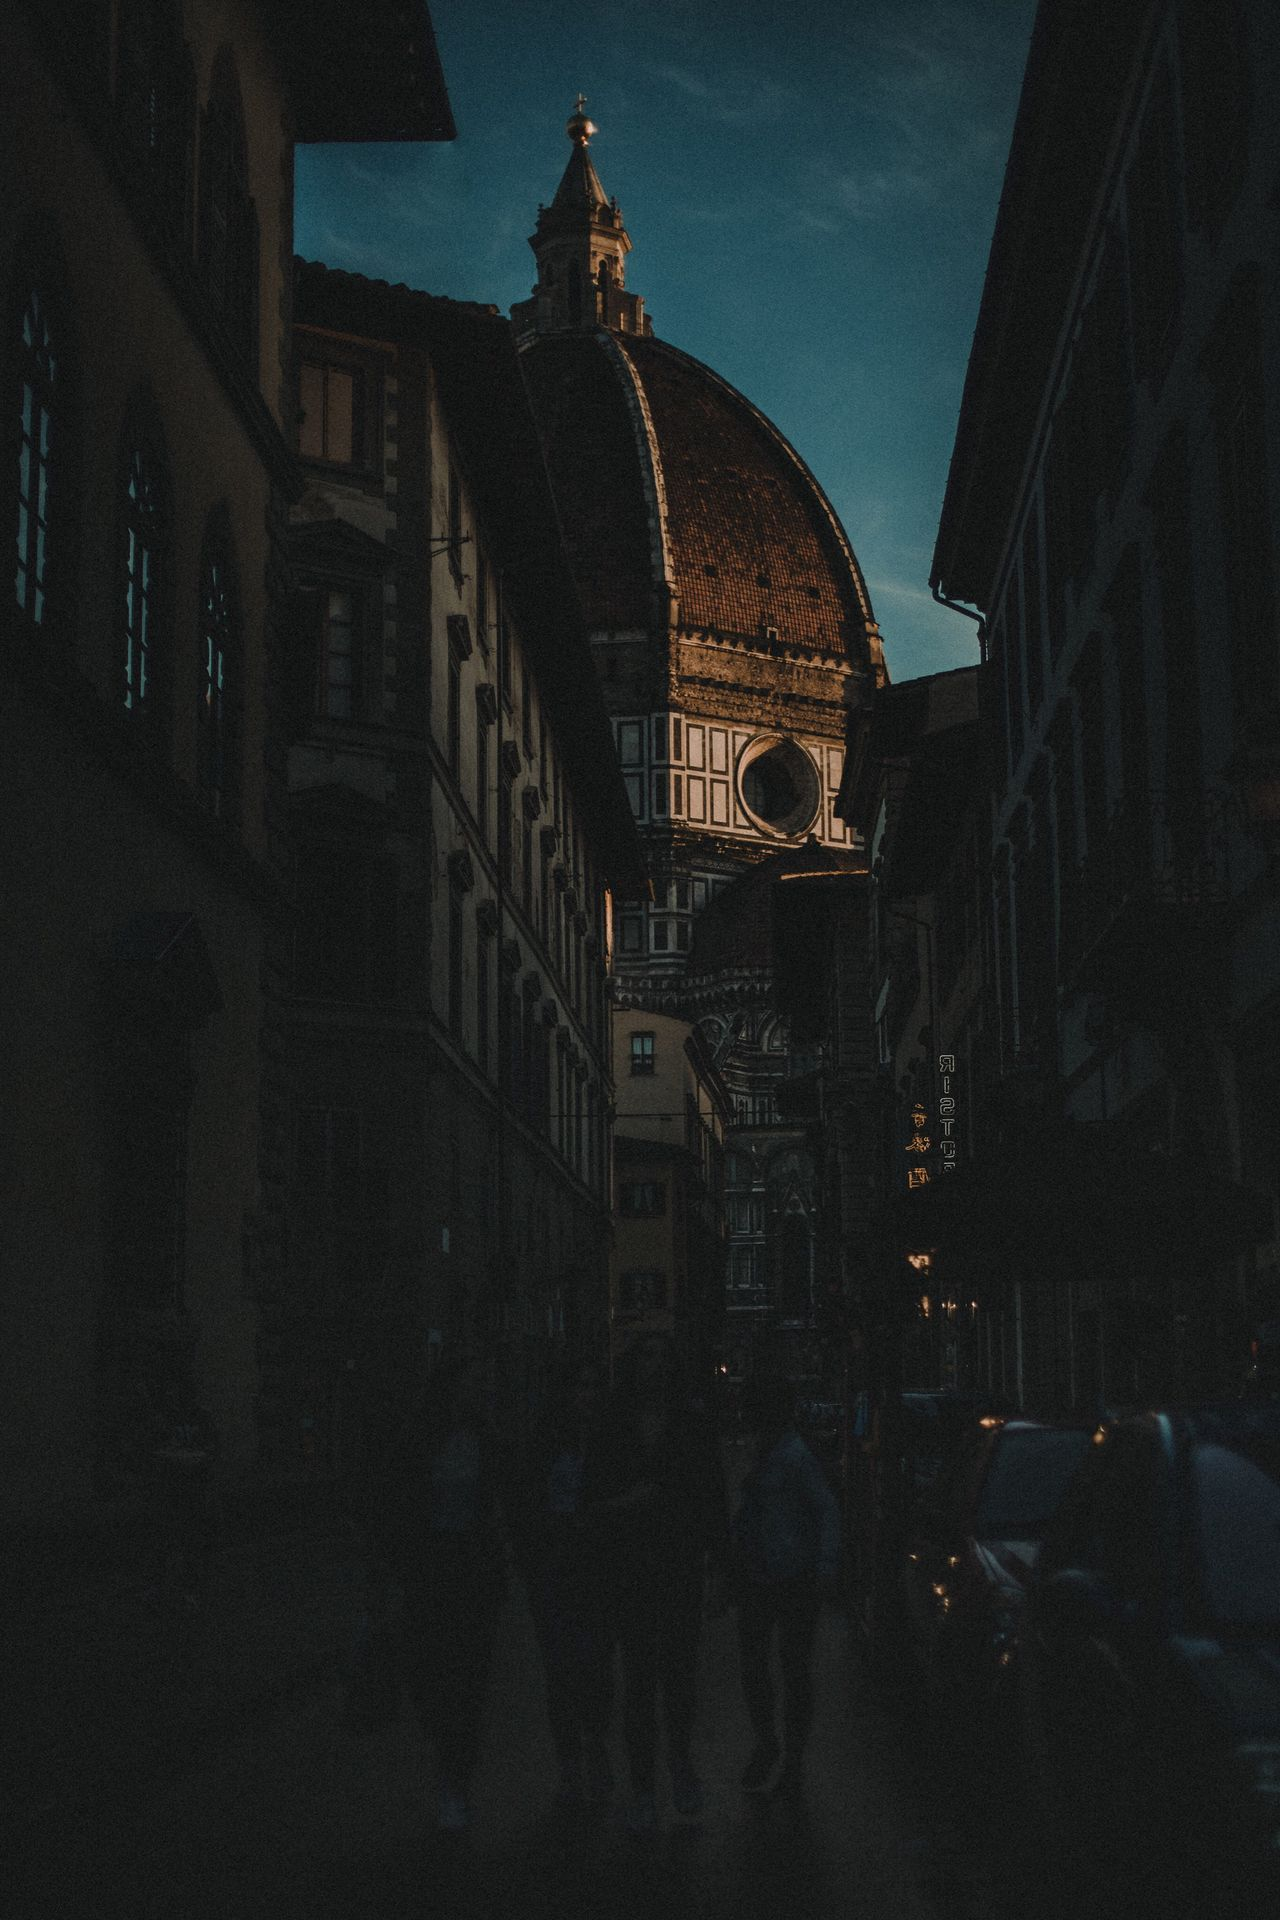 Building Exterior Built Structure Religion Spirituality Sky Outdoors Dome Urbanphotography Italy Streetphotography Street Life The Week On EyeEem EyeEm Photooftheday The Week Of Eyeem EyeEm Best Shots Firenze Florence Church City Lights Canon Architecture History